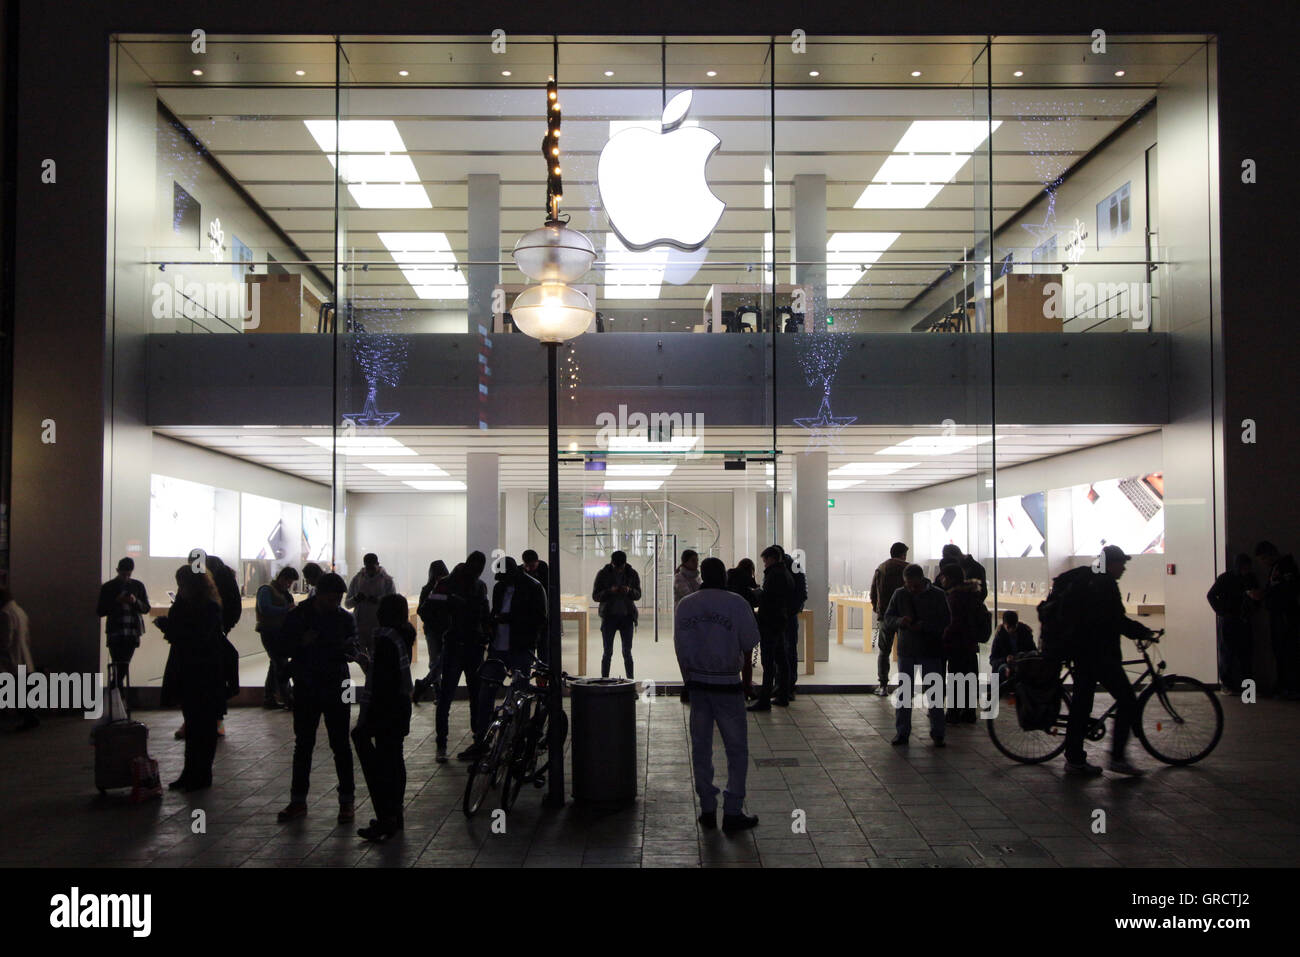 Group Of People Using Hot Spot At A Closed Apple Store In Munich At Night - Stock Image